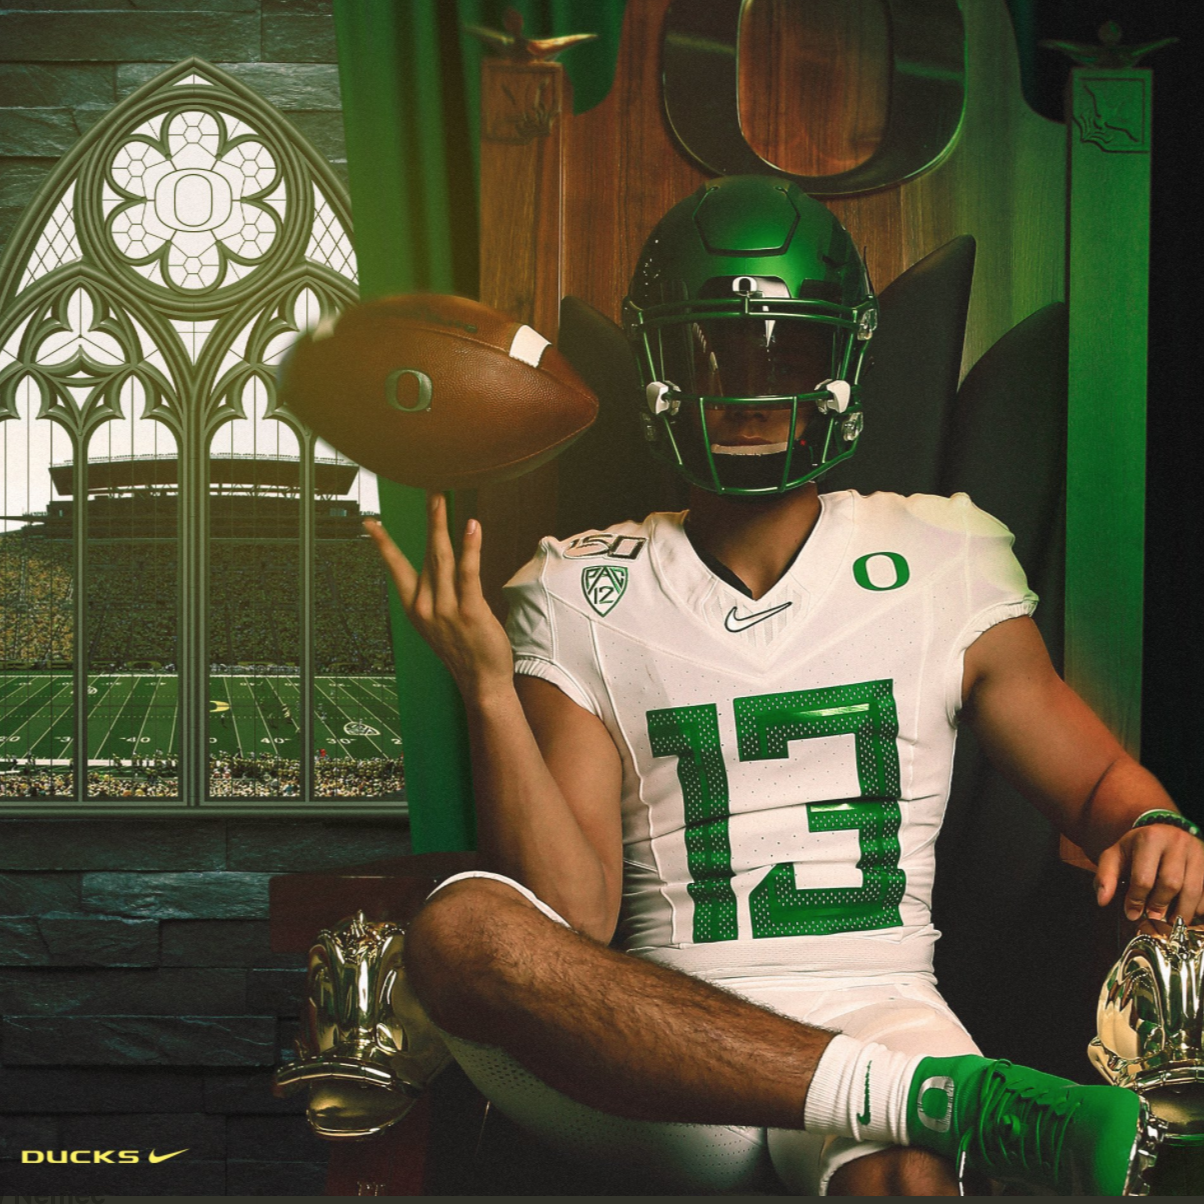 Oregon Ducks Football Recruiting Early Signing Period Live Updates Oregonlive Com